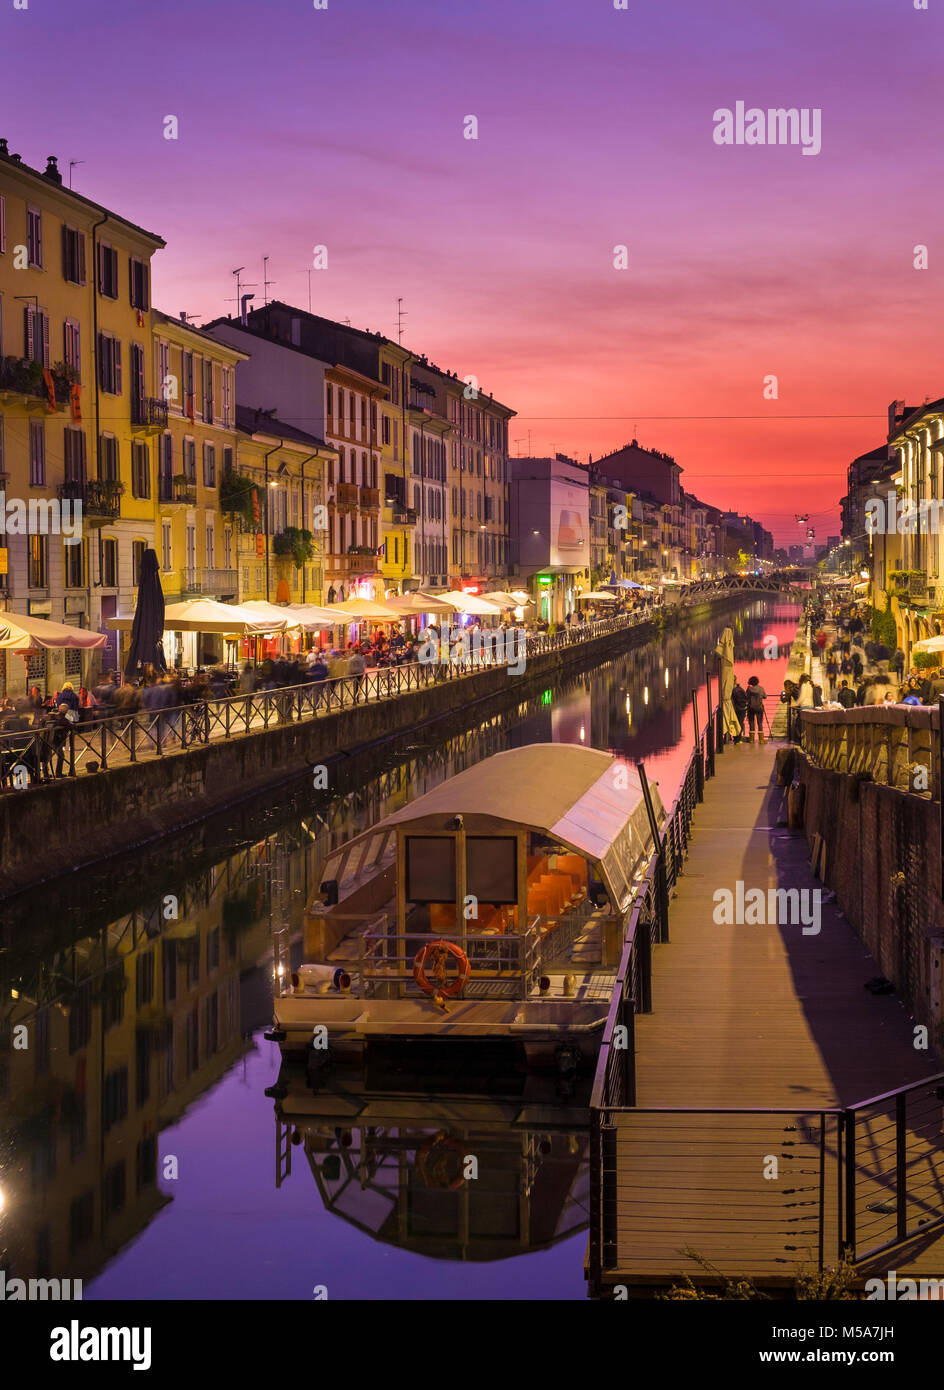 The Naviglio Grande canal, Milan, Italy at night - Stock Image